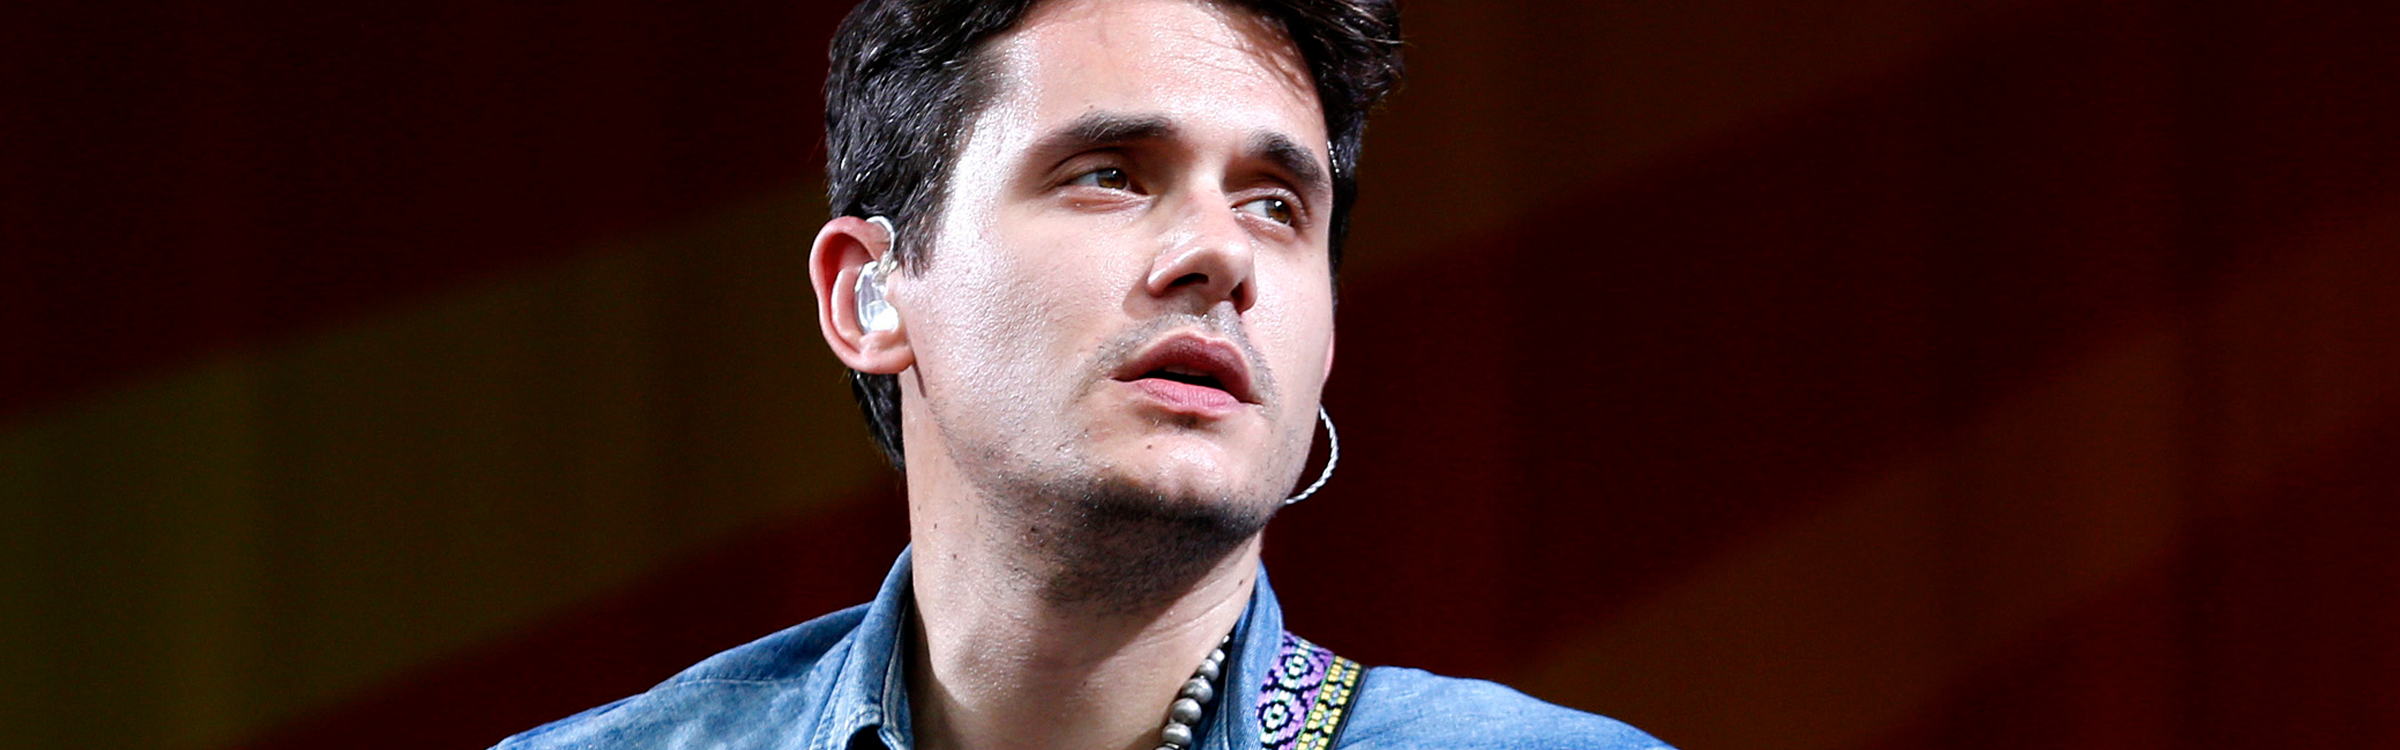 Header john mayer